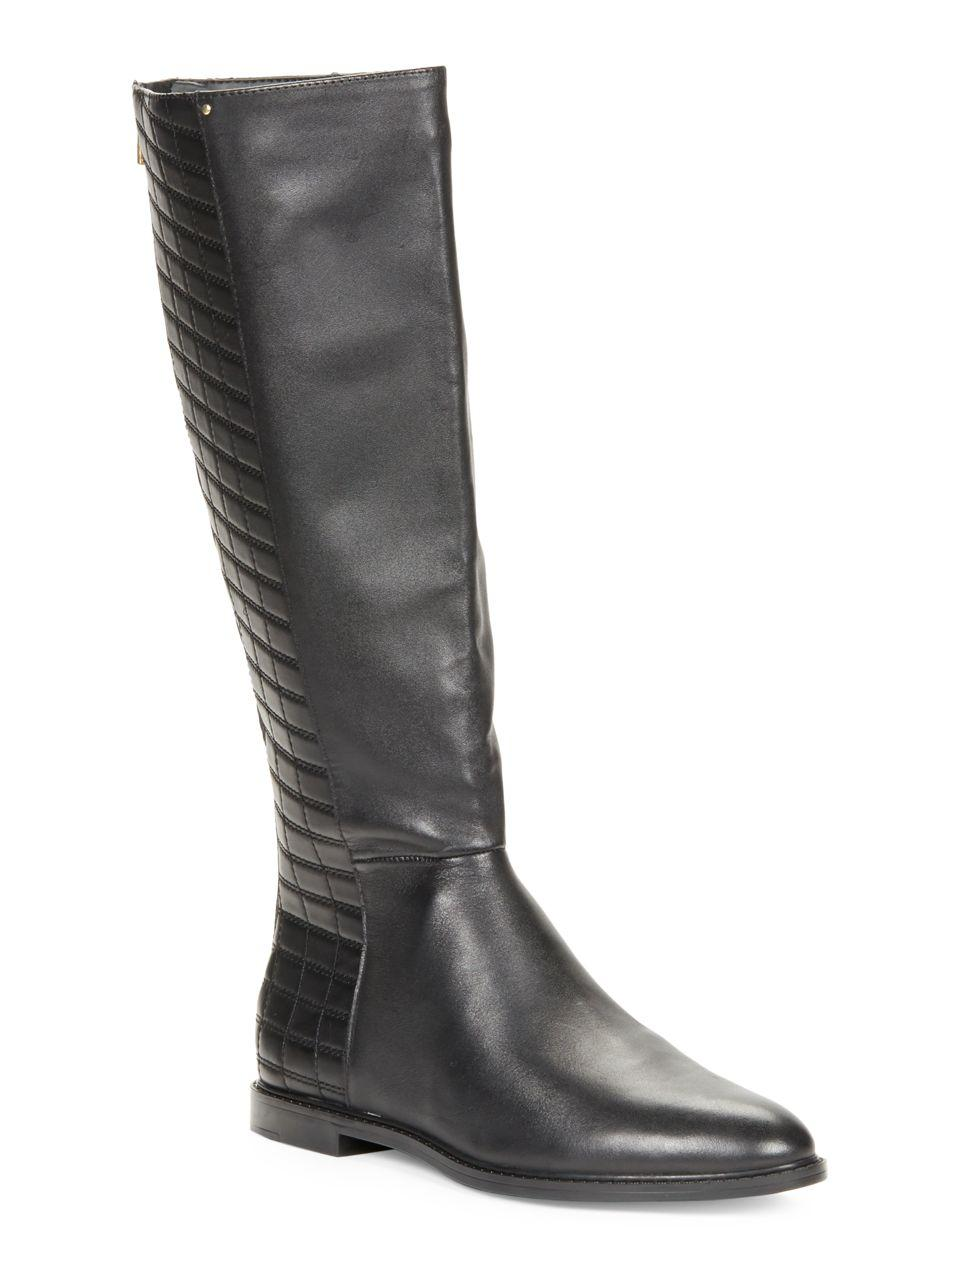 calvin klein donnily leather knee high boots in black lyst